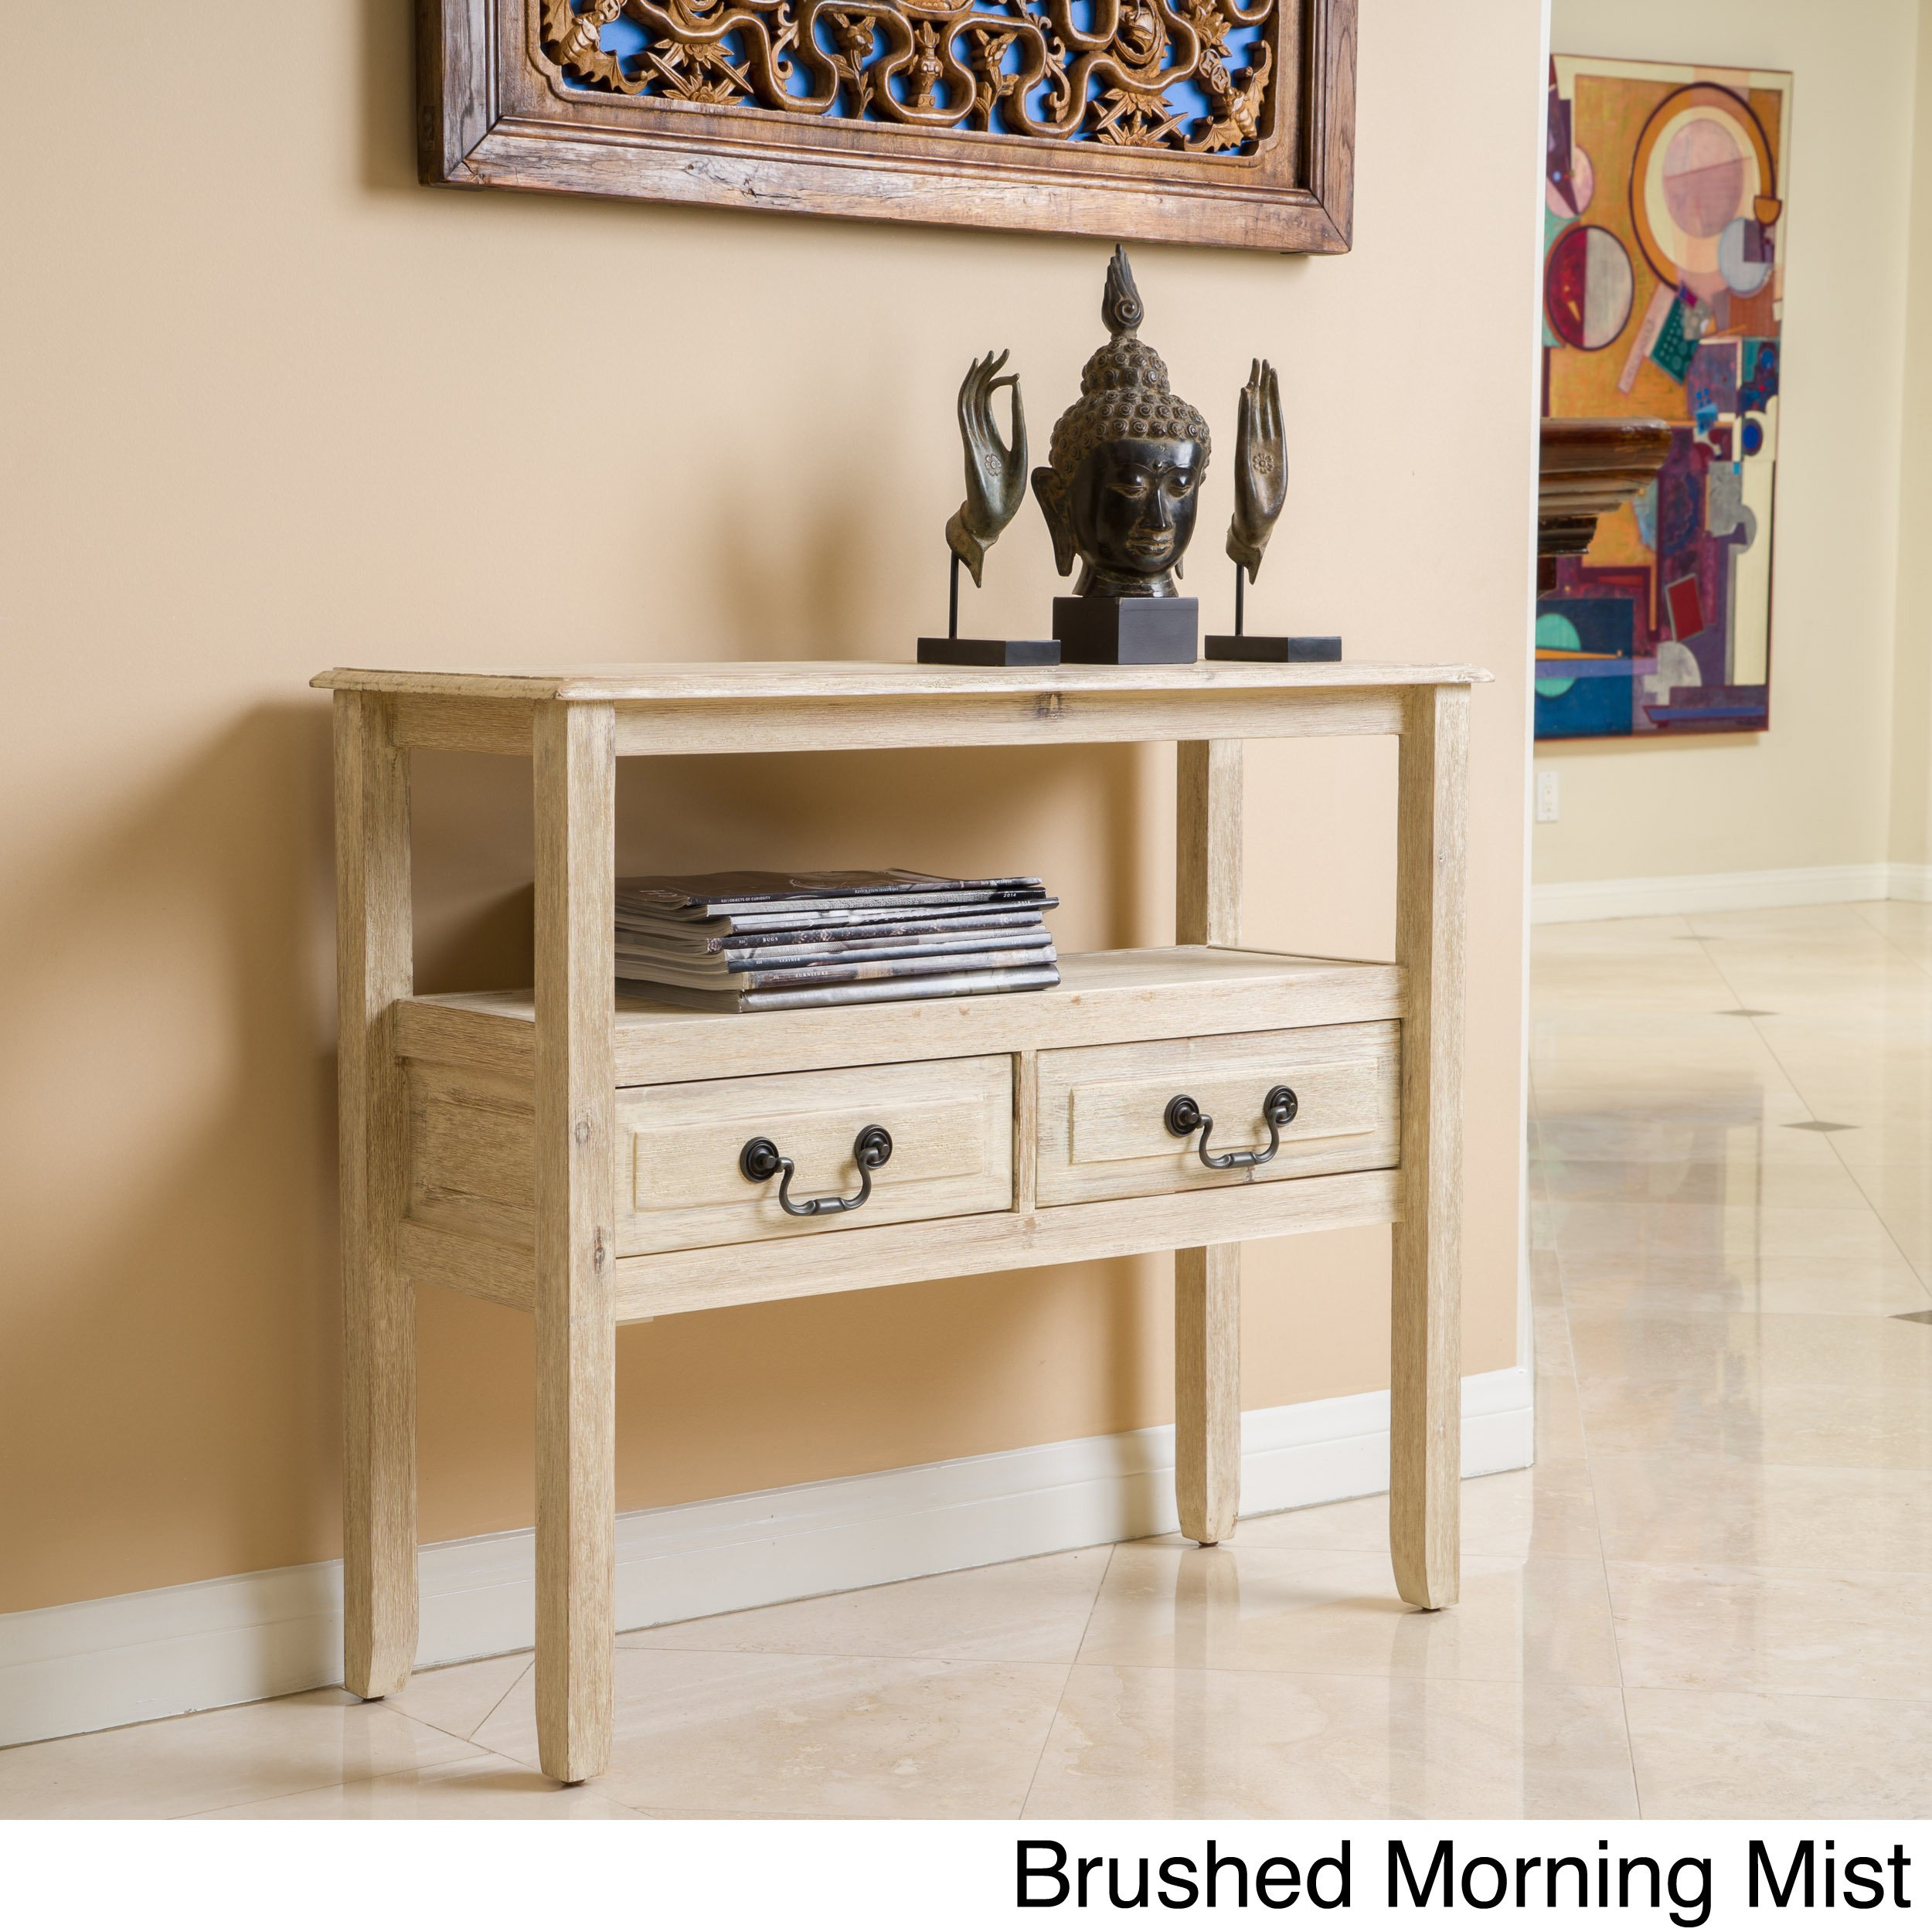 grant acacia wood accent table christopher knight home brown faux marble dining knotty pine bedroom furniture clear acrylic end kitchen placemats benchwright side white porcelain